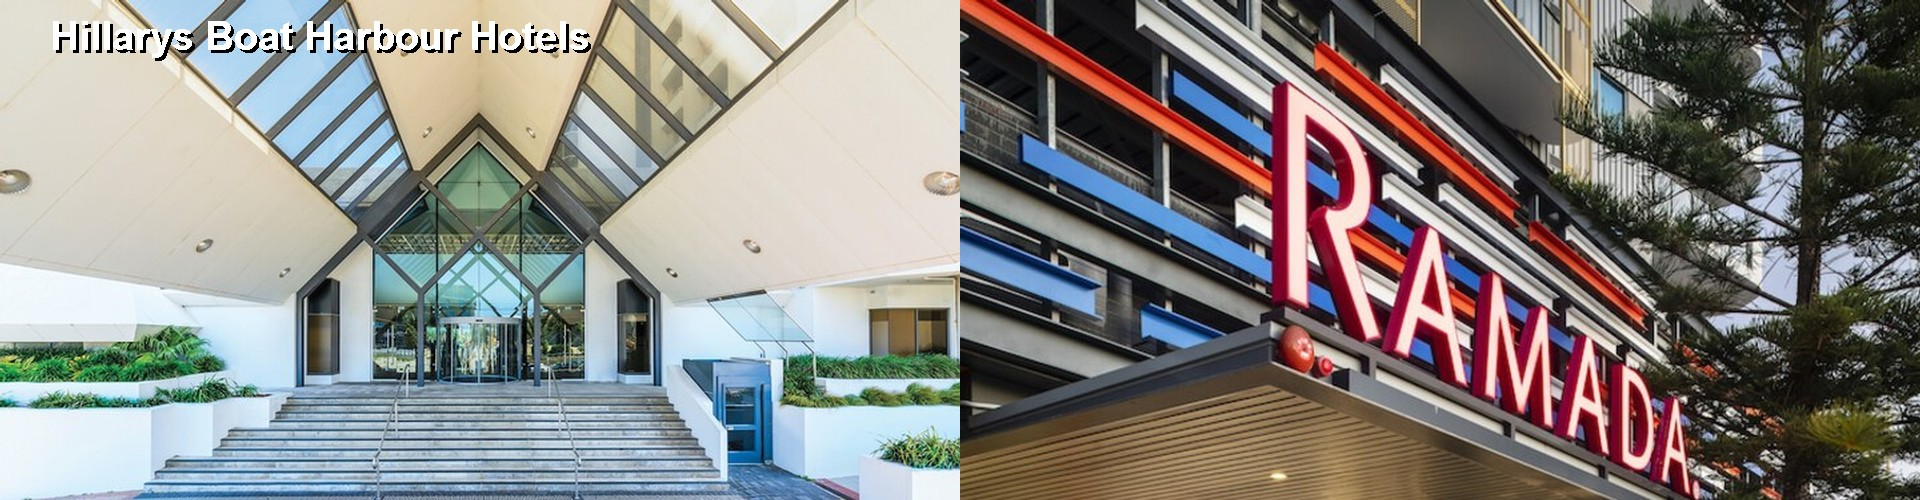 5 Best Hotels near Hillarys Boat Harbour